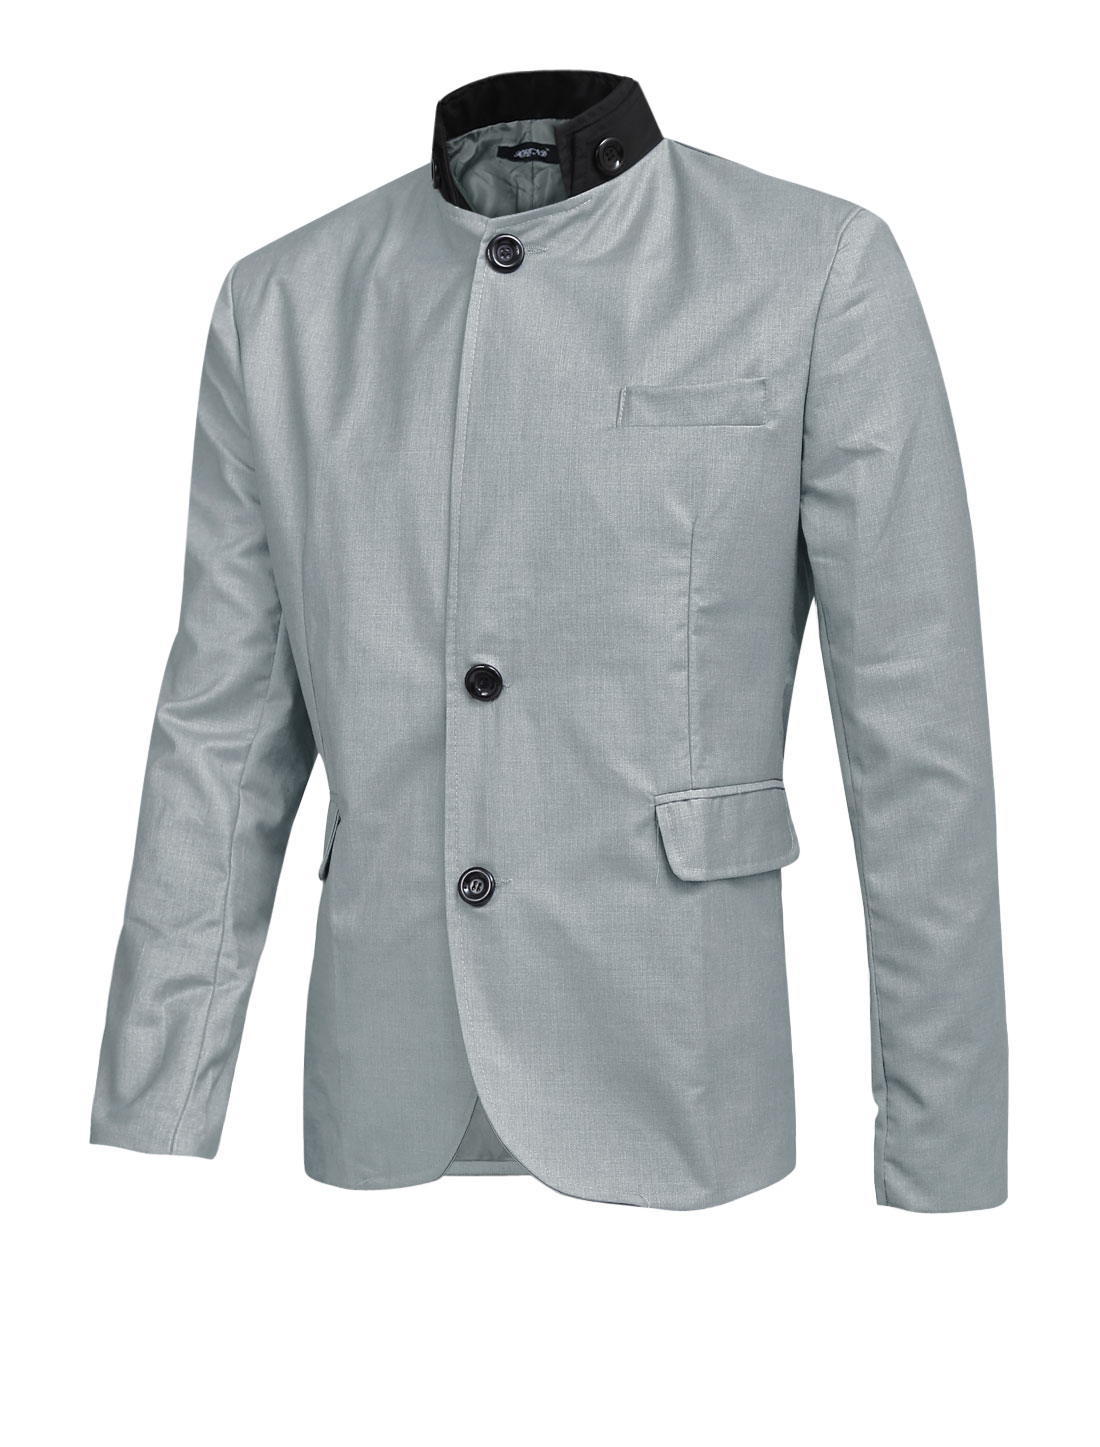 Men Contrast Color Convertible Collar Single Breasted Vertical Pockets Blazer Light Gray L